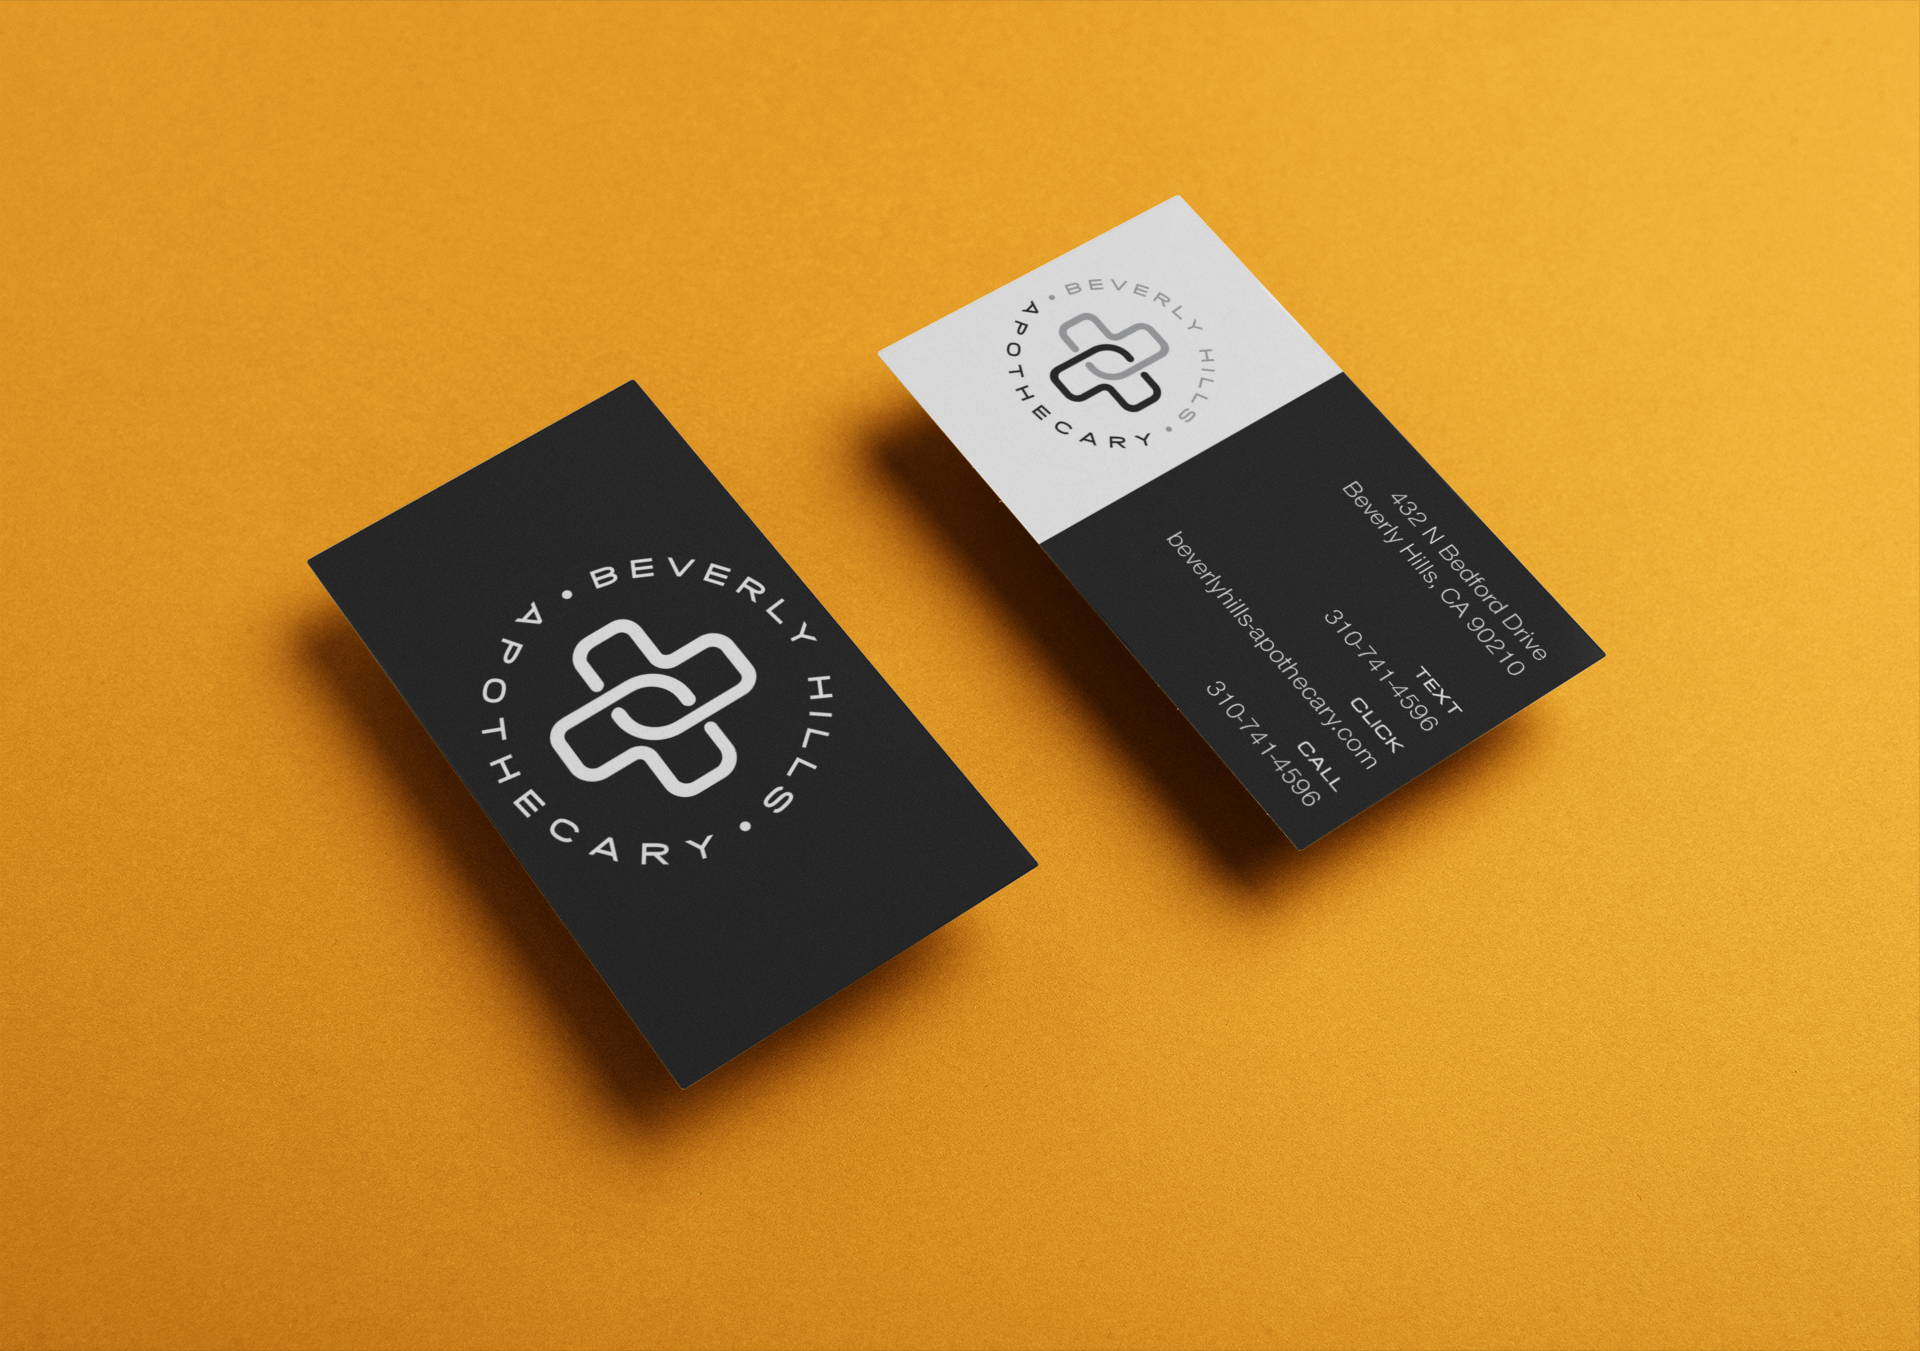 beverly hills apothecary cards